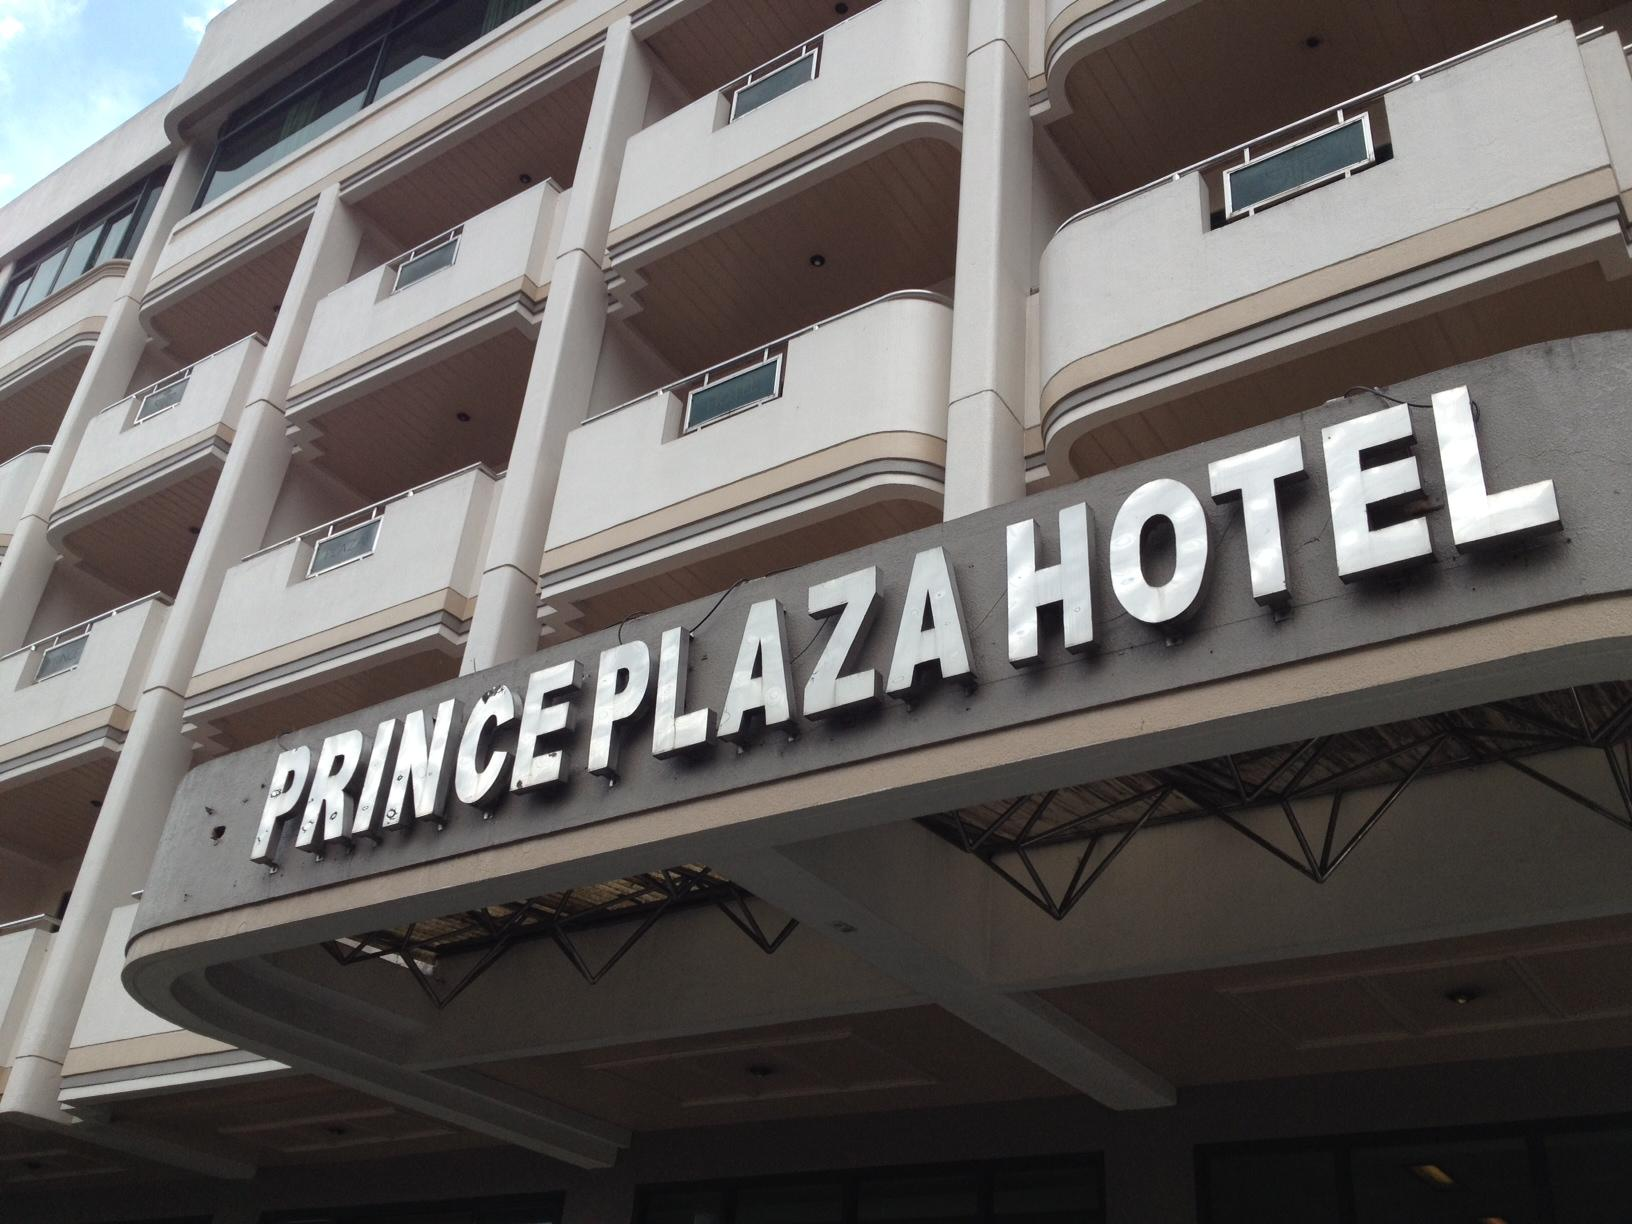 Prince Plaza Hotel - Baguio City Proper  Baguio  Philippines